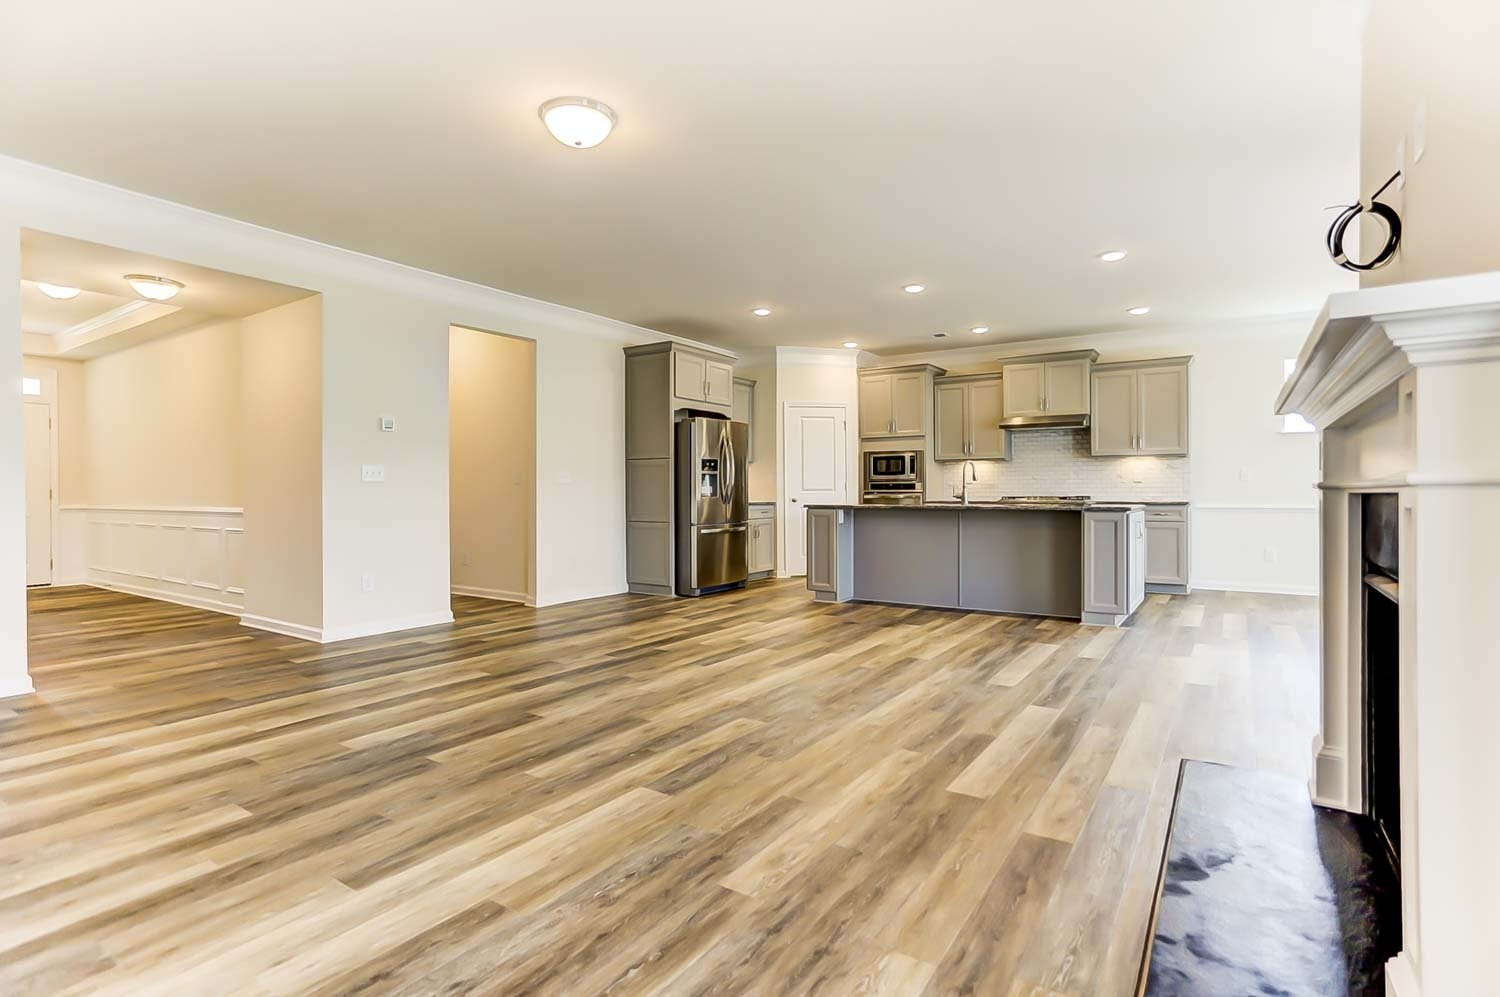 Flooring in move-in-ready home